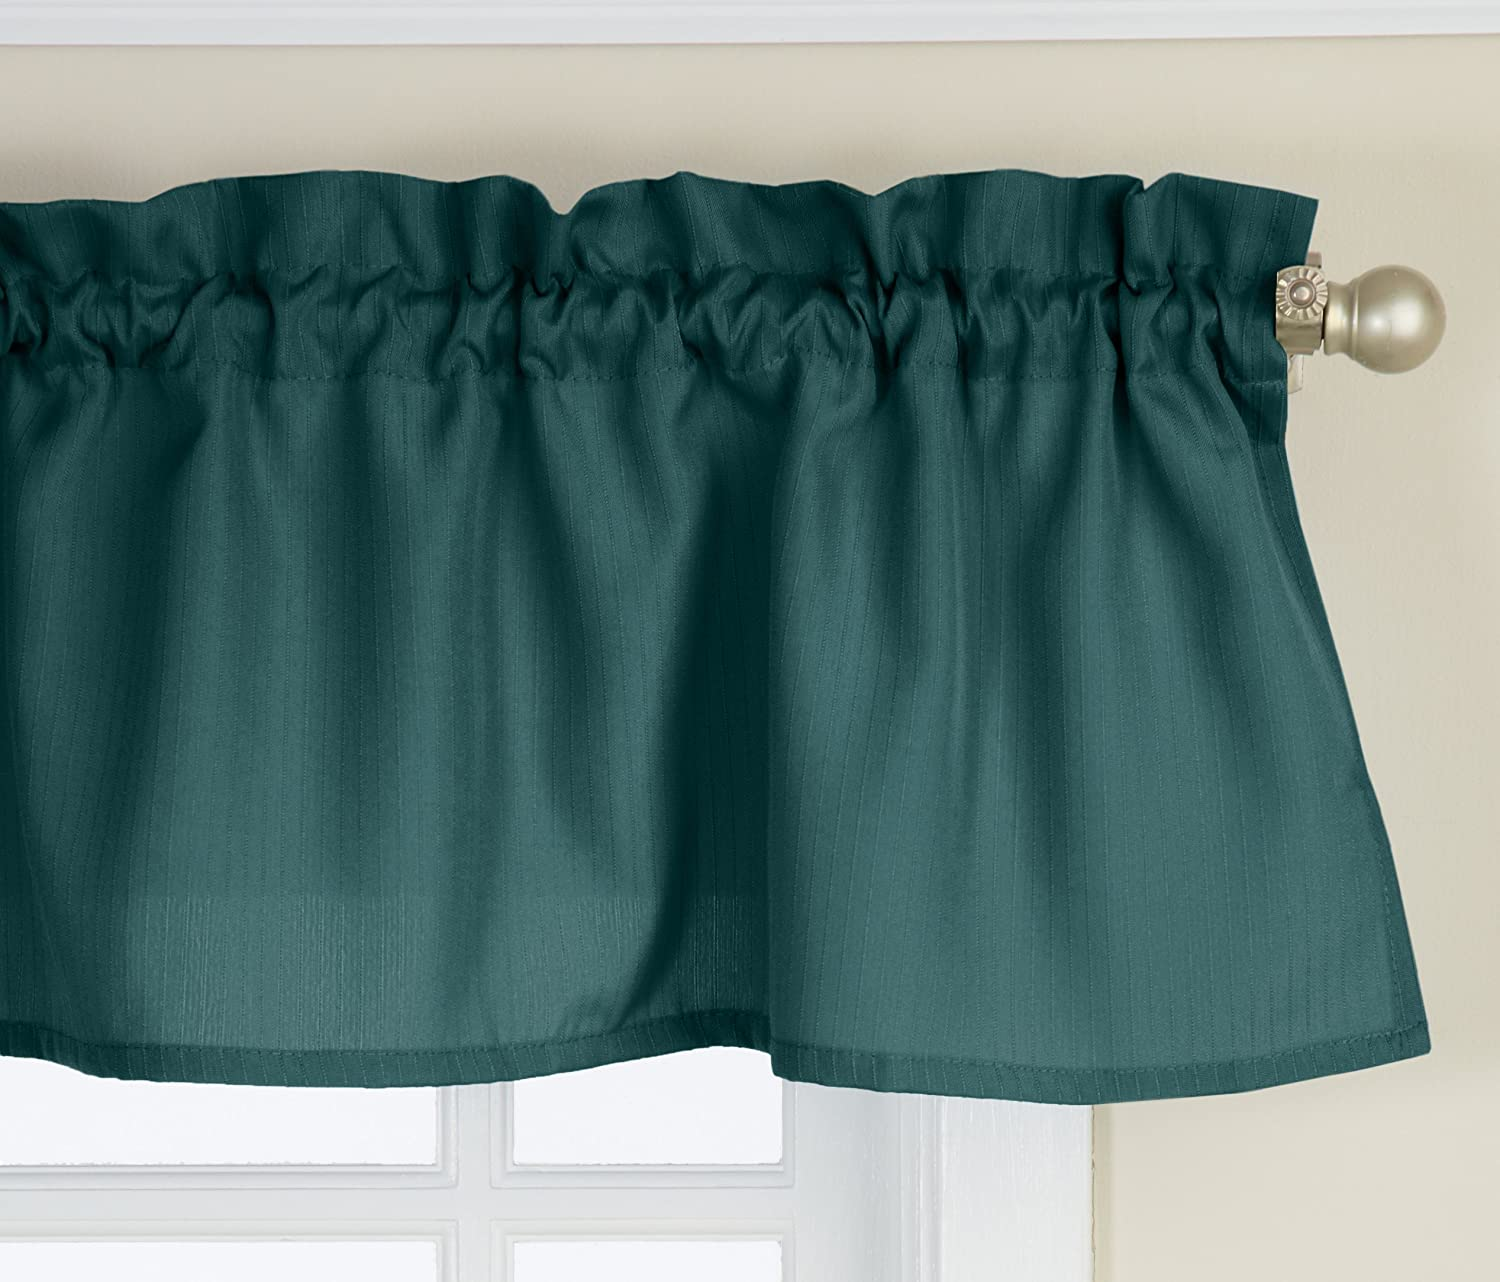 Lorraine Home Fashions Ribcord Valance, 54-Inch x 12-Inch, Evergreen